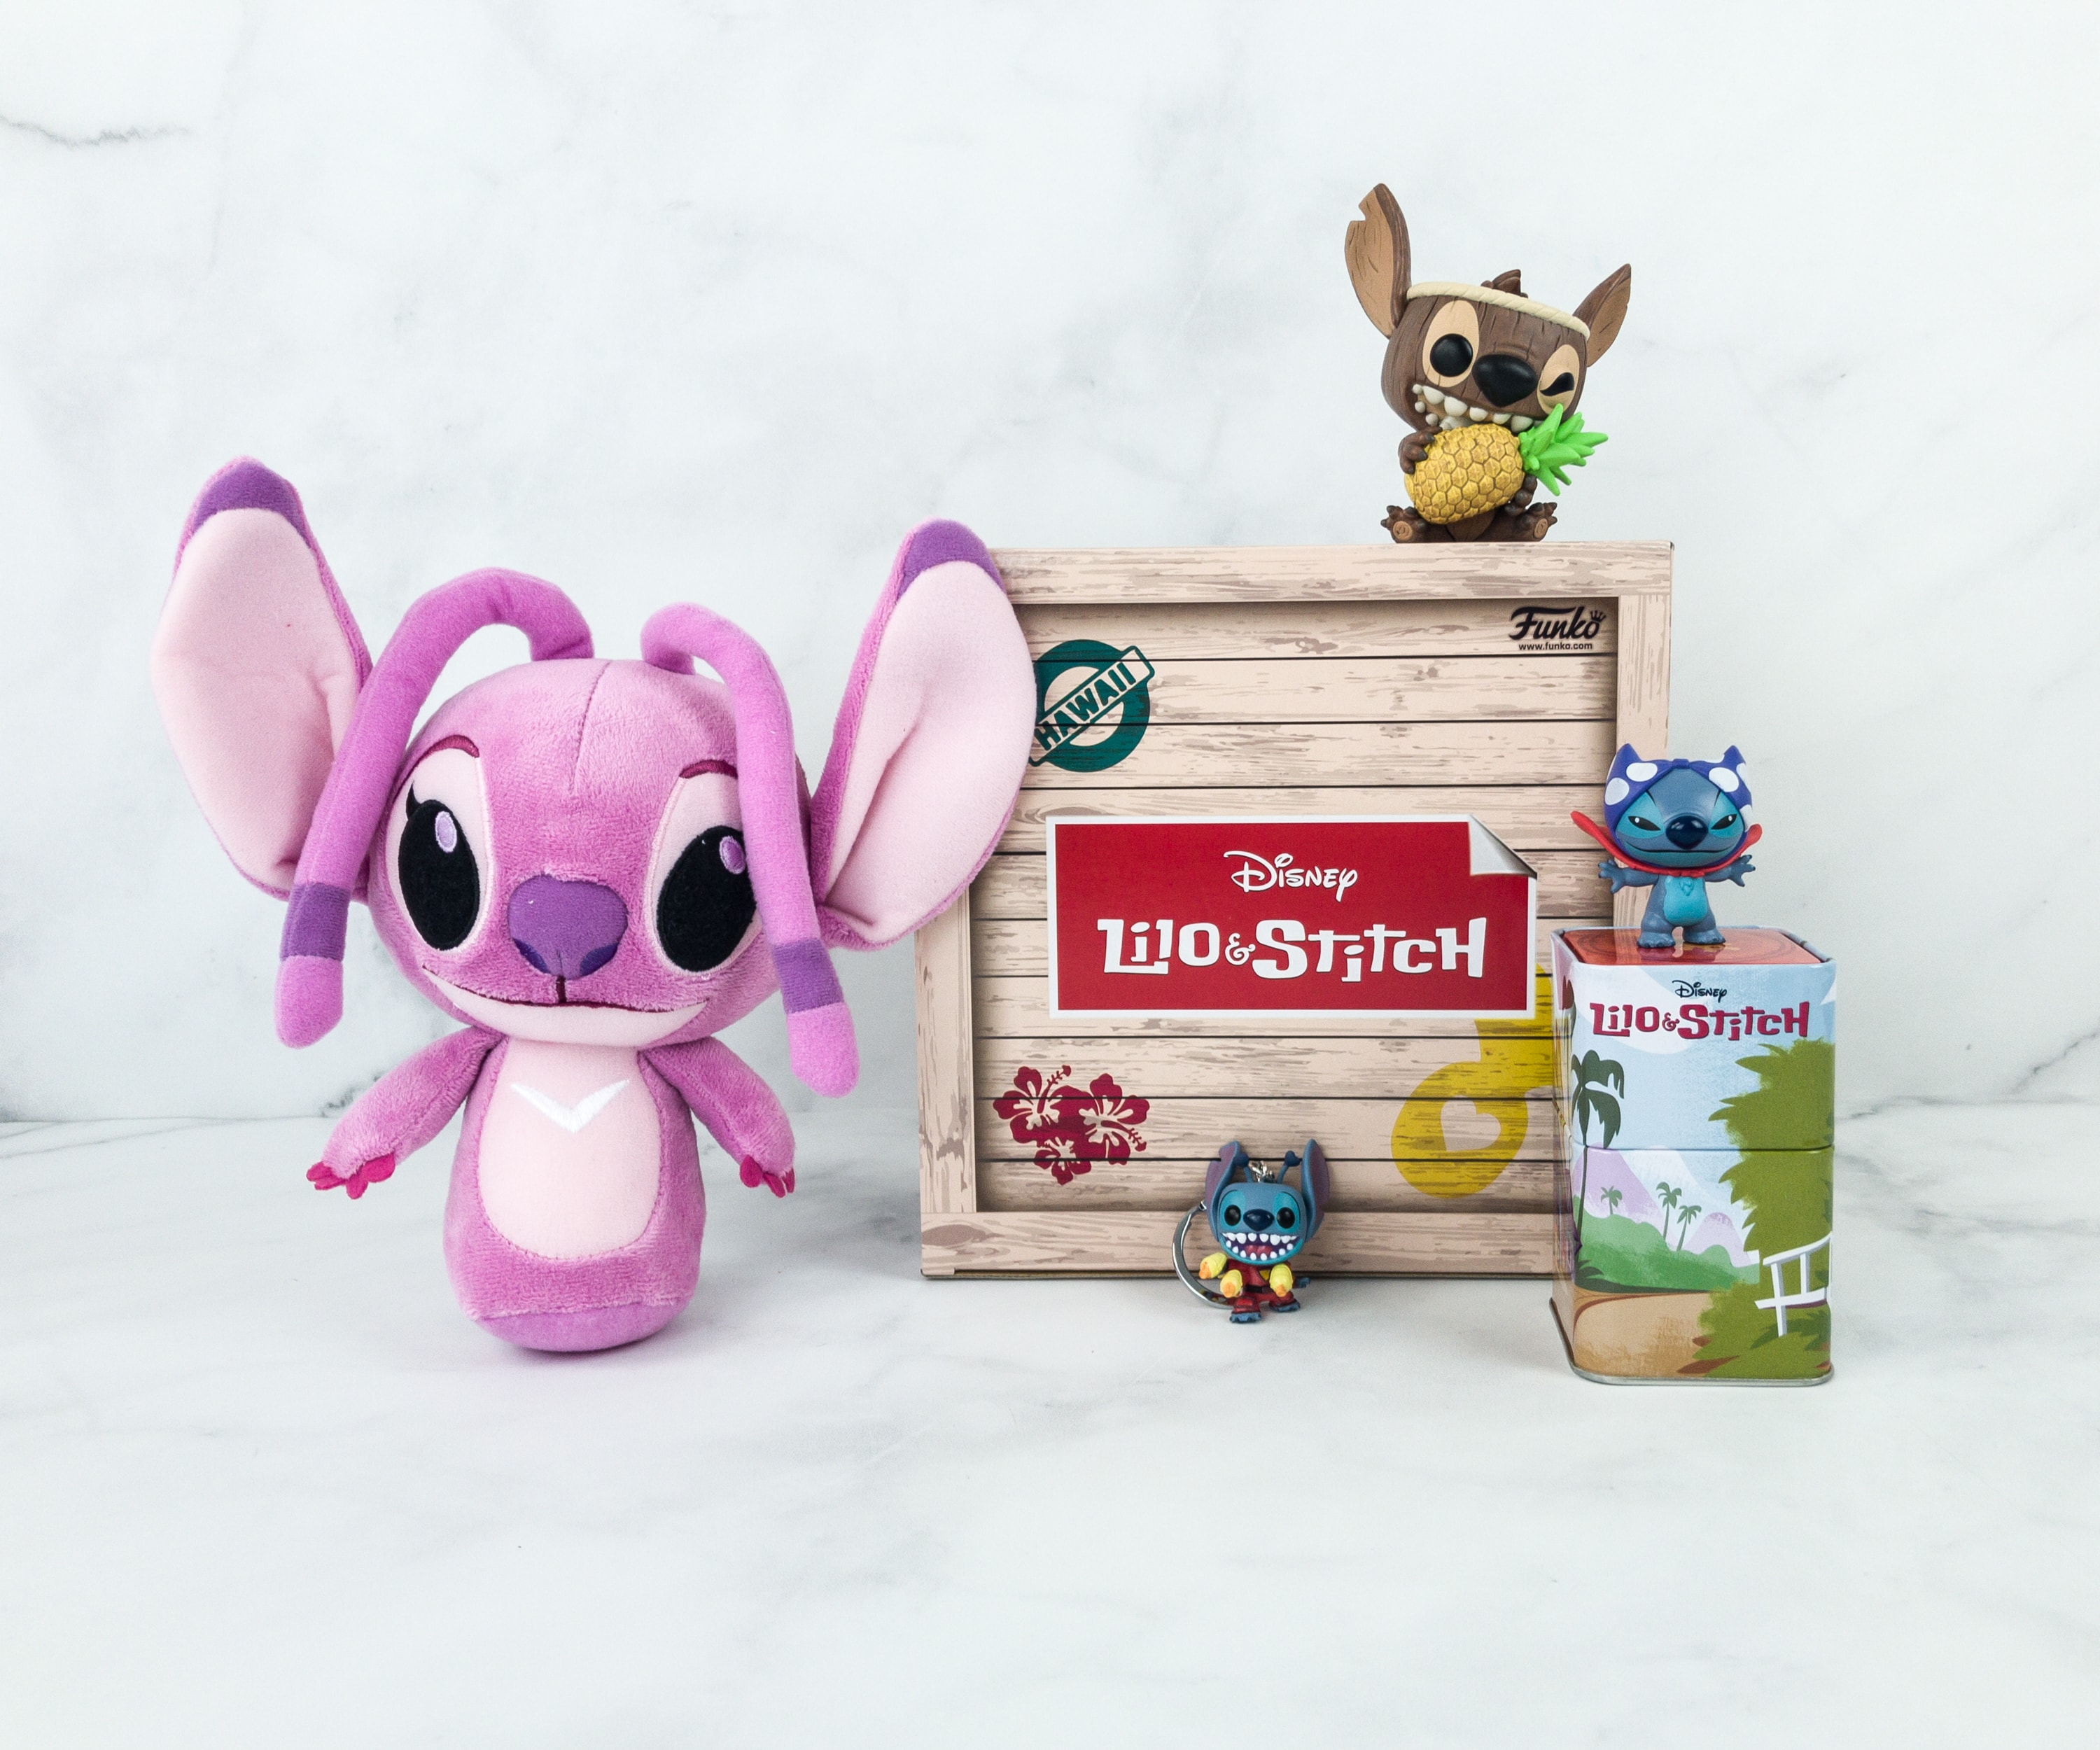 Disney Treasures November 2018 Box Review – Lilo & Stitch!